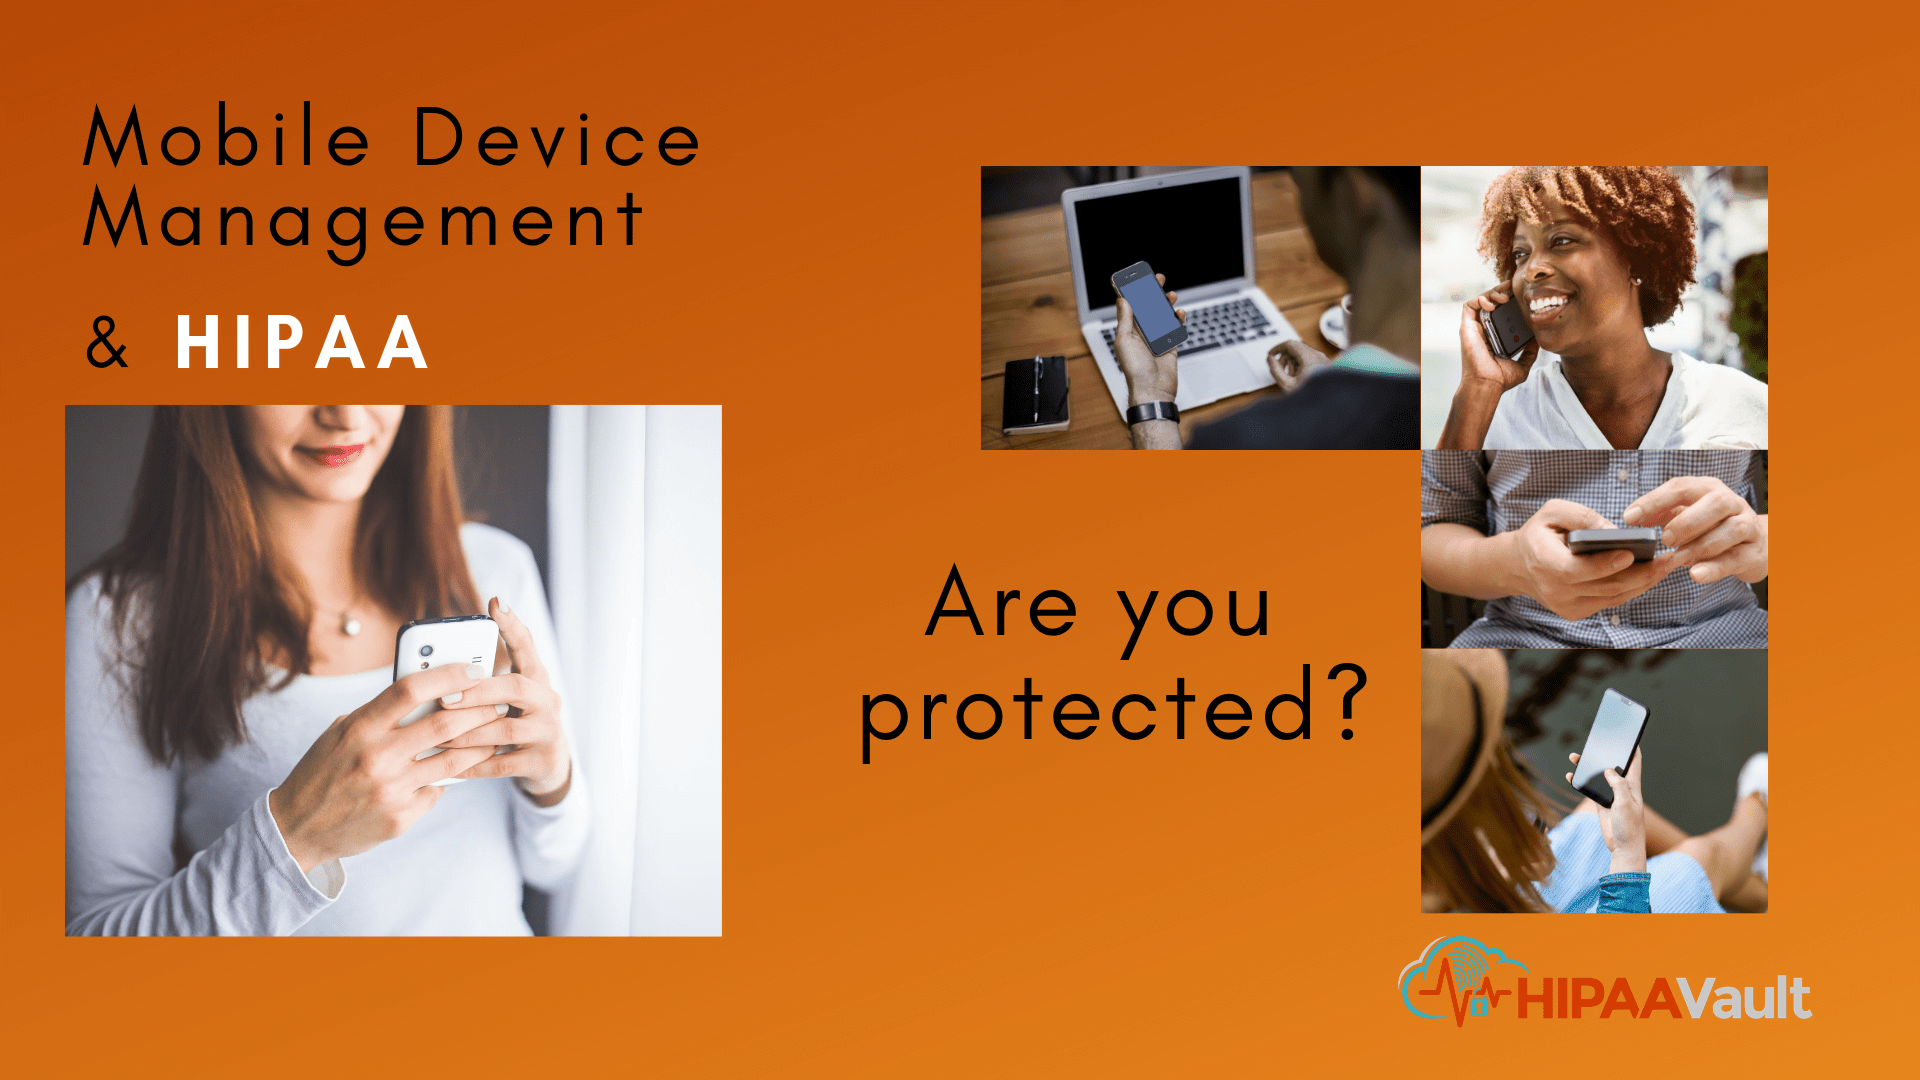 Mobile Device management and HIPAA